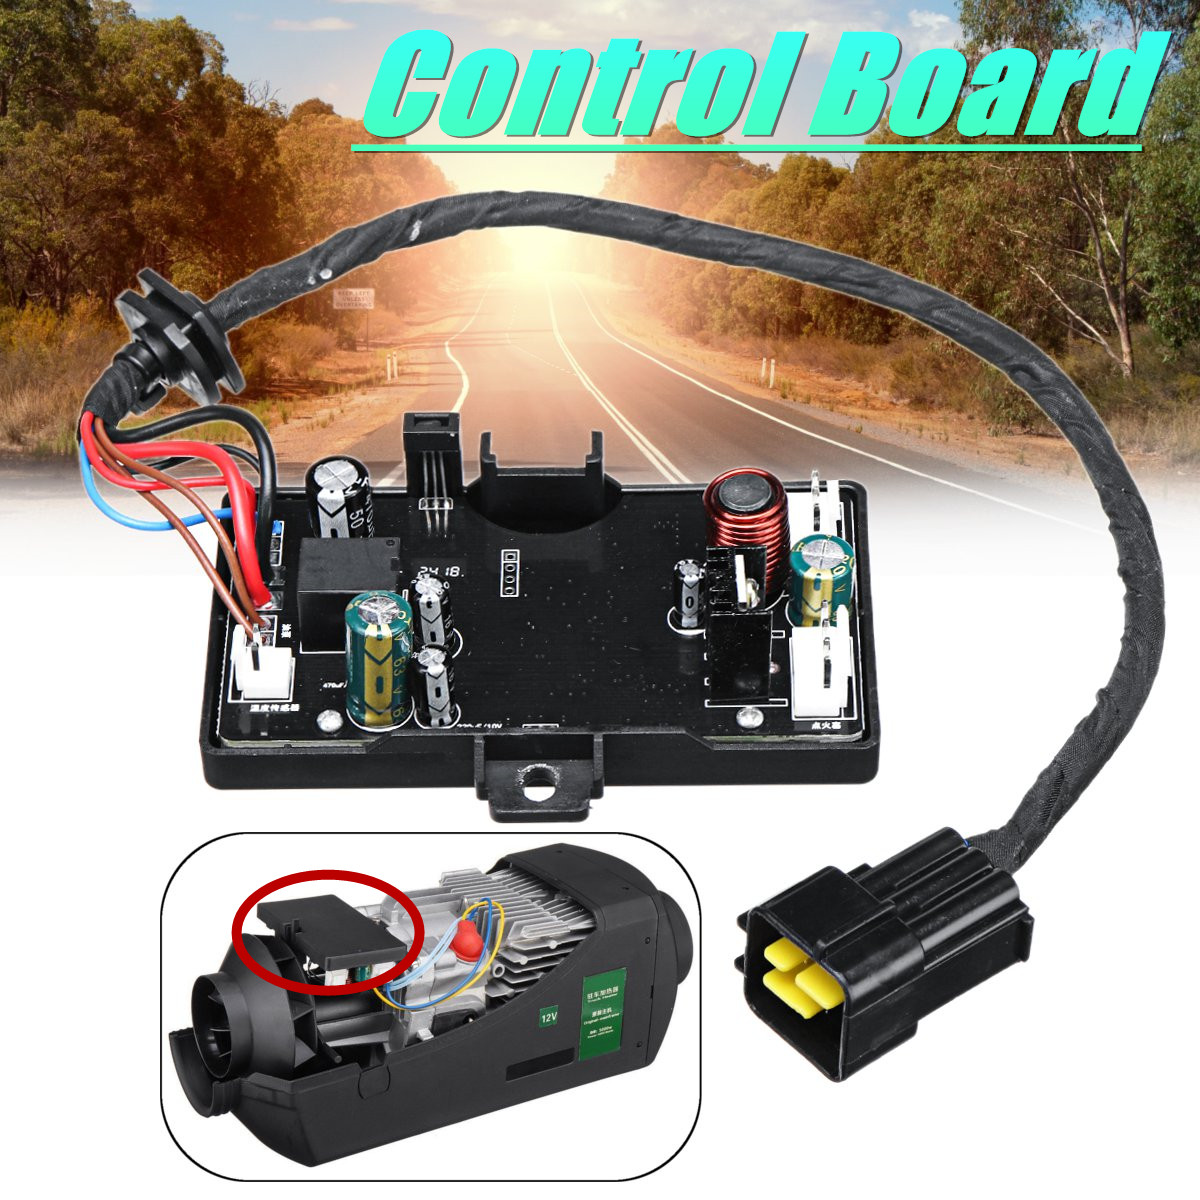 Air Diesel. Heater Control board Diesel. Parking Heater Control board Motherboard  For 12V/24V 3KW/5KW Air HeaterAir Diesel. Heater Control board Diesel. Parking Heater Control board Motherboard  For 12V/24V 3KW/5KW Air Heater